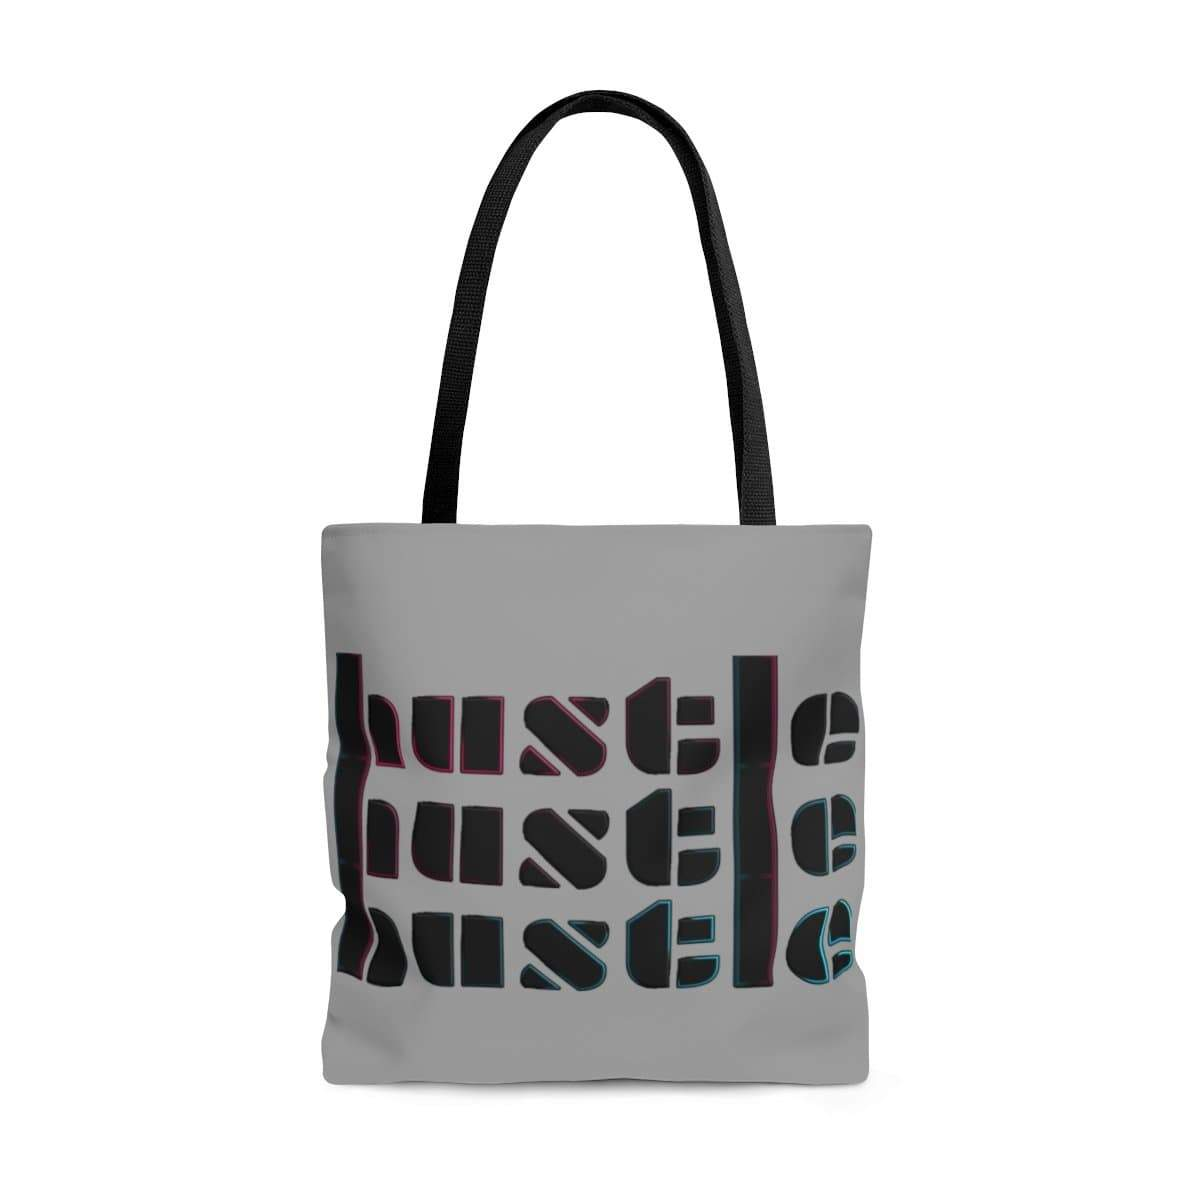 Plumskum Bags Large 3 Times the Hustle Tote Bag